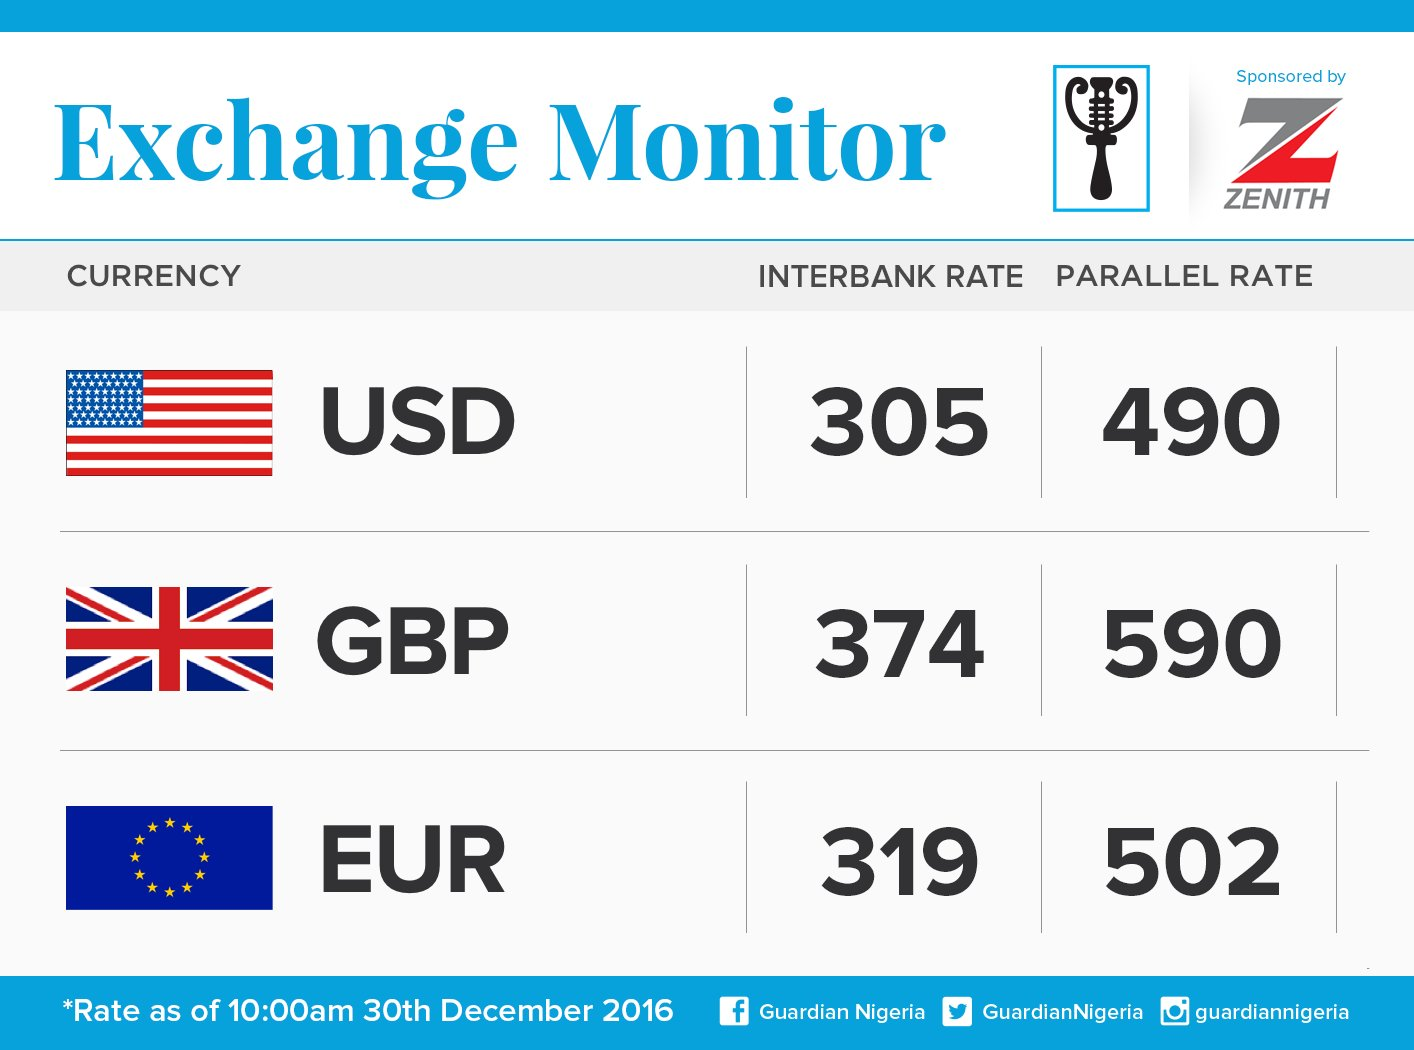 Exchange Rate For 30th December 2016